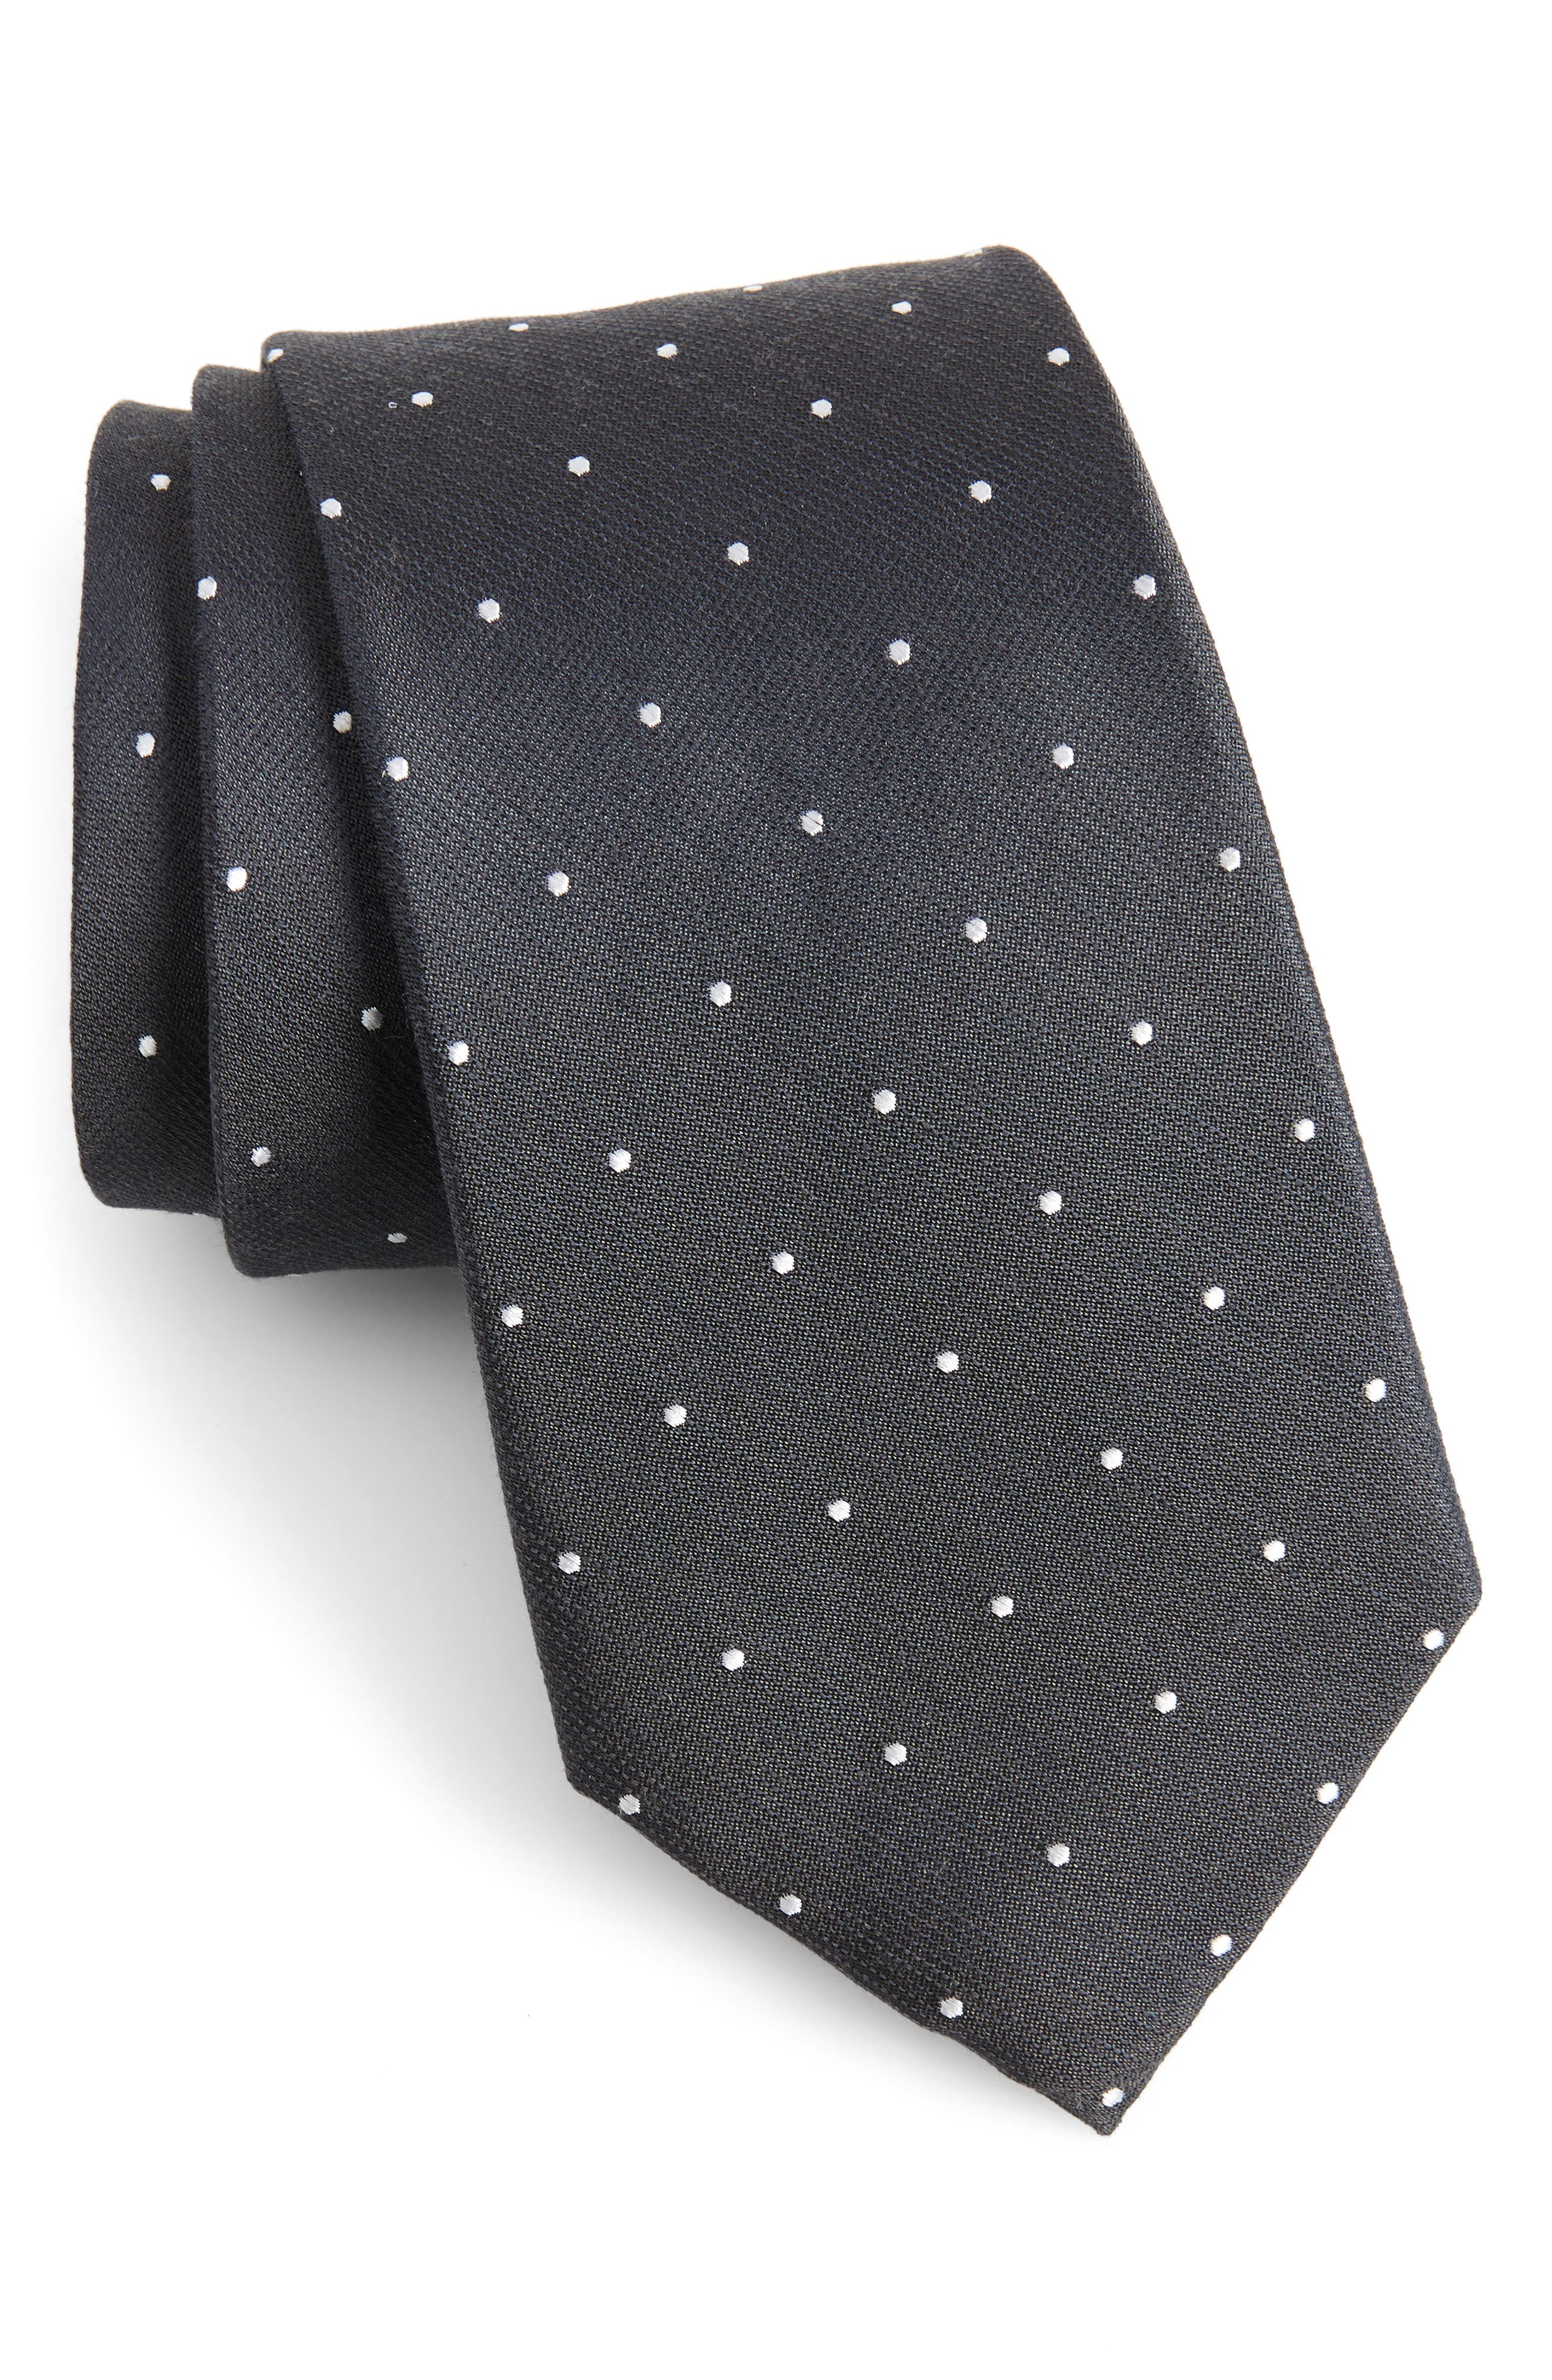 Main Image - The Tie Bar Dotted Report Silk & Wool Tie (X-Long)